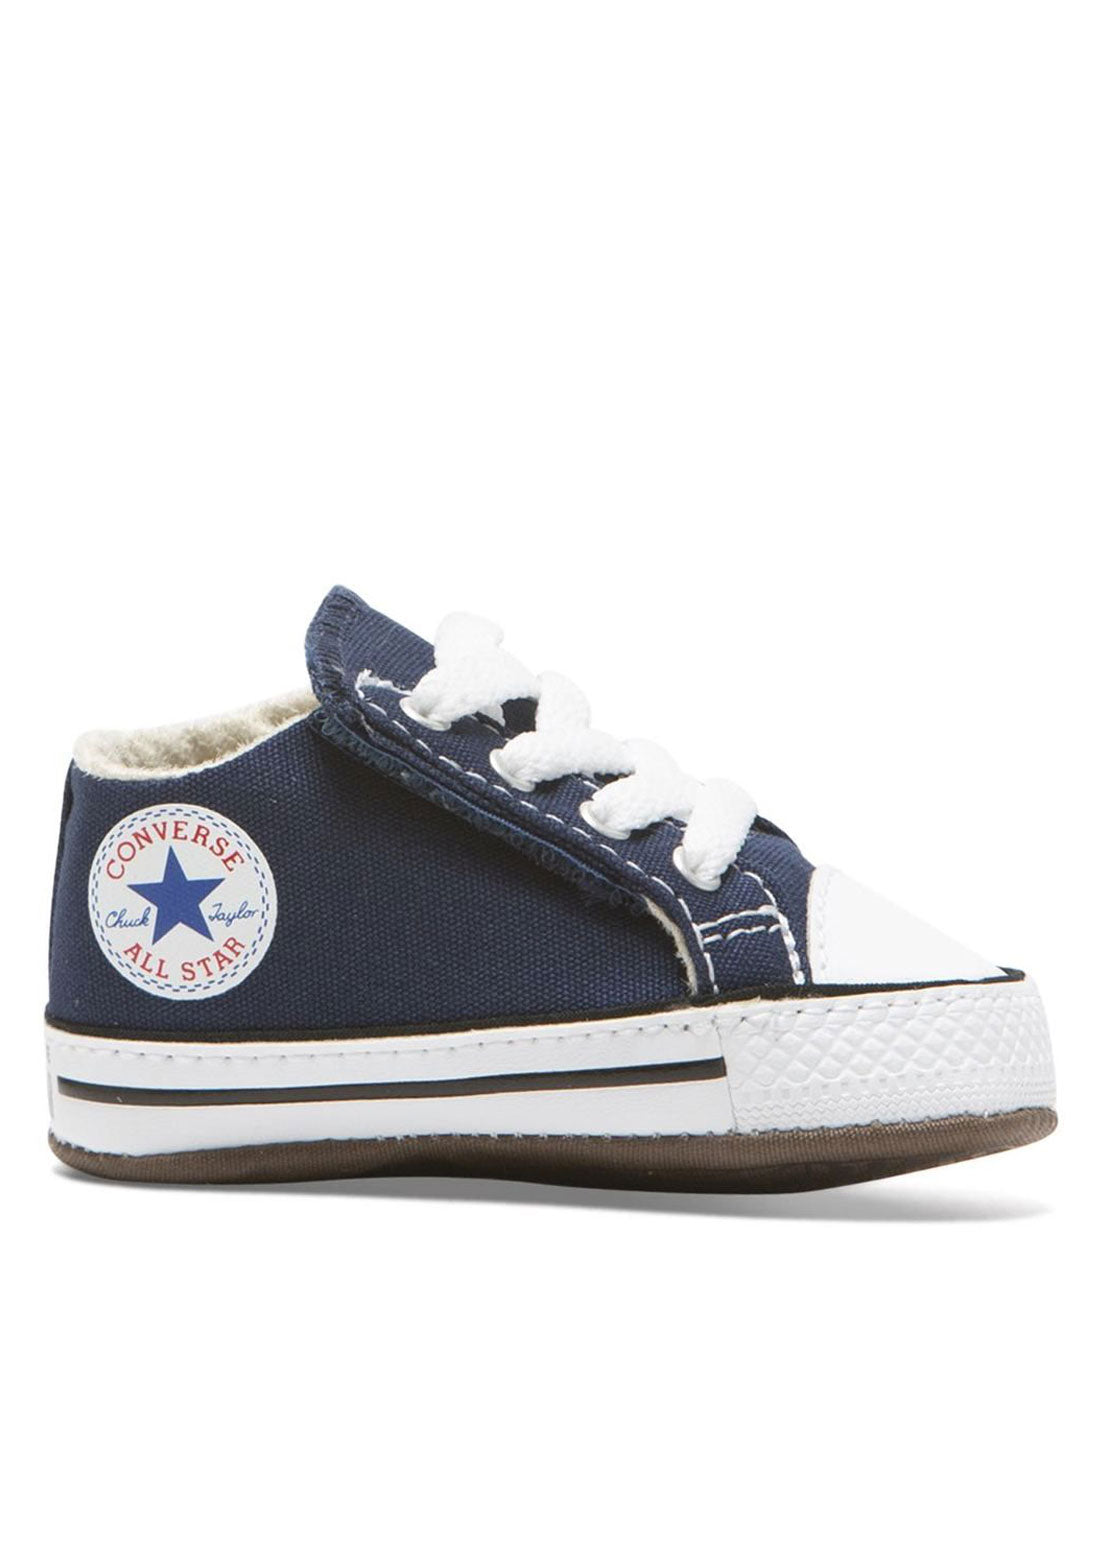 Converse Junior Infant Chuck Taylor All Star Cribster Canvas Shoes Navy/Natural Ivory/White